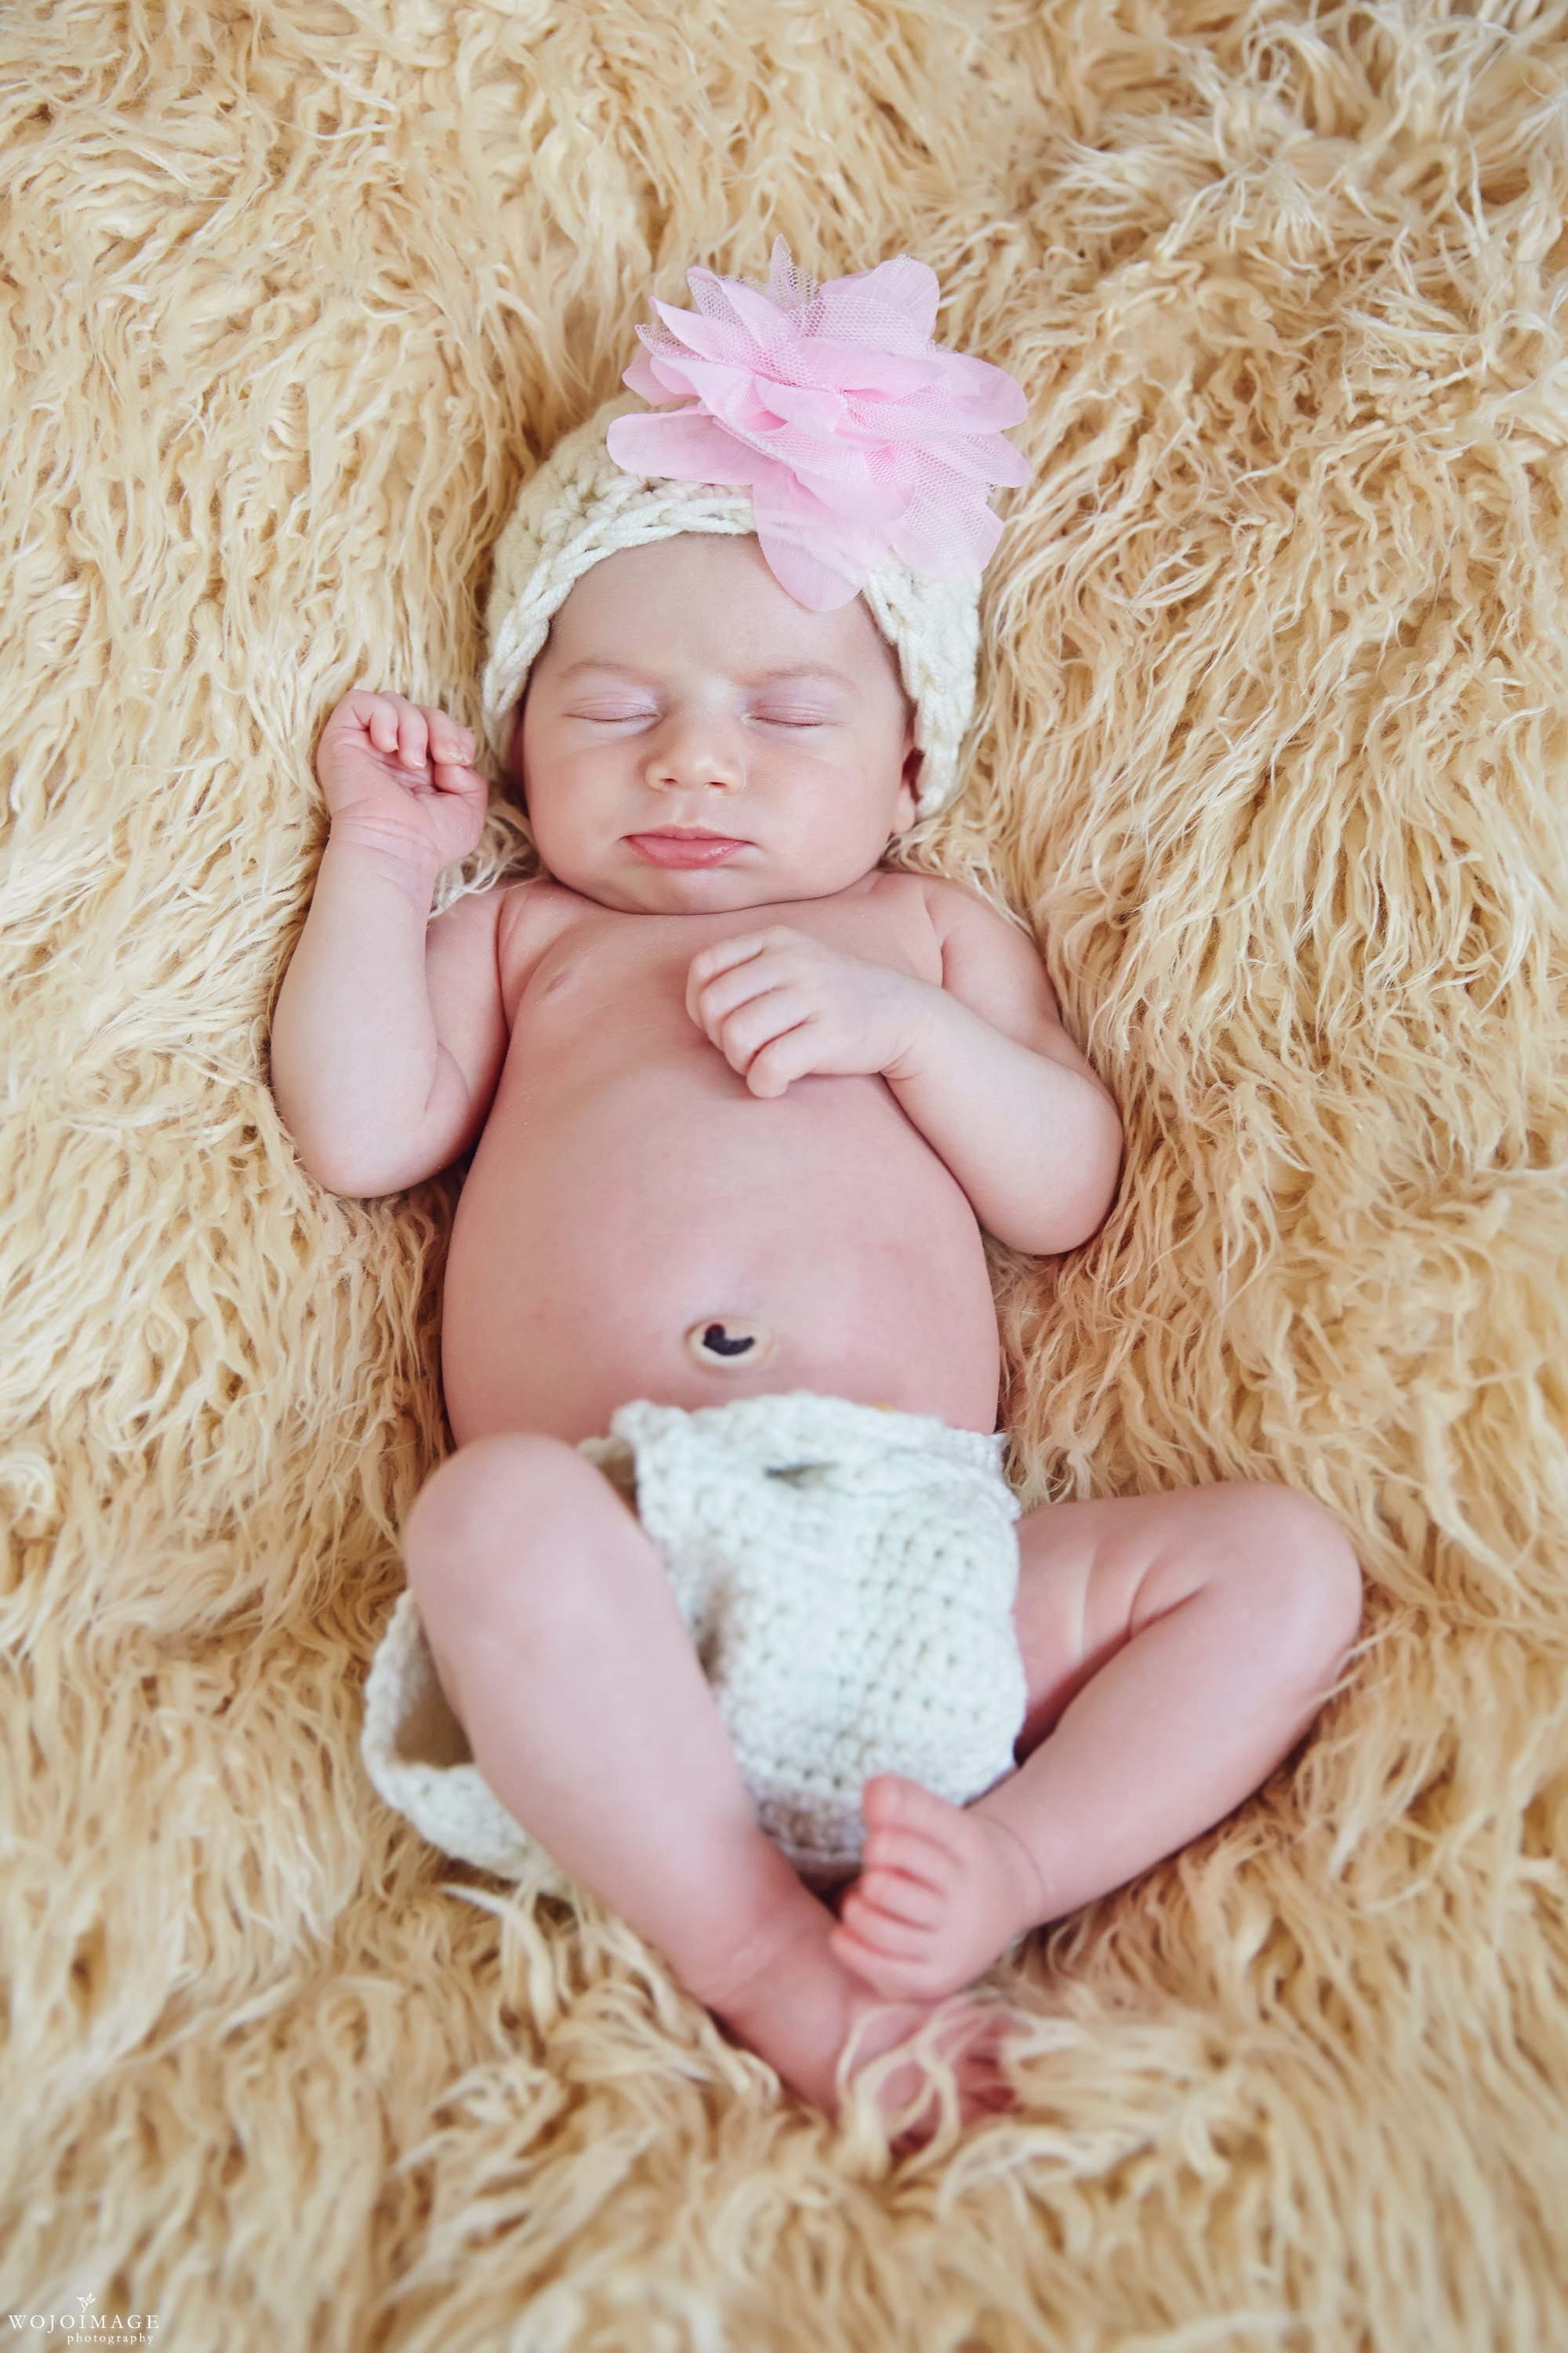 Natural Newborn Pose on a Furry Blanket